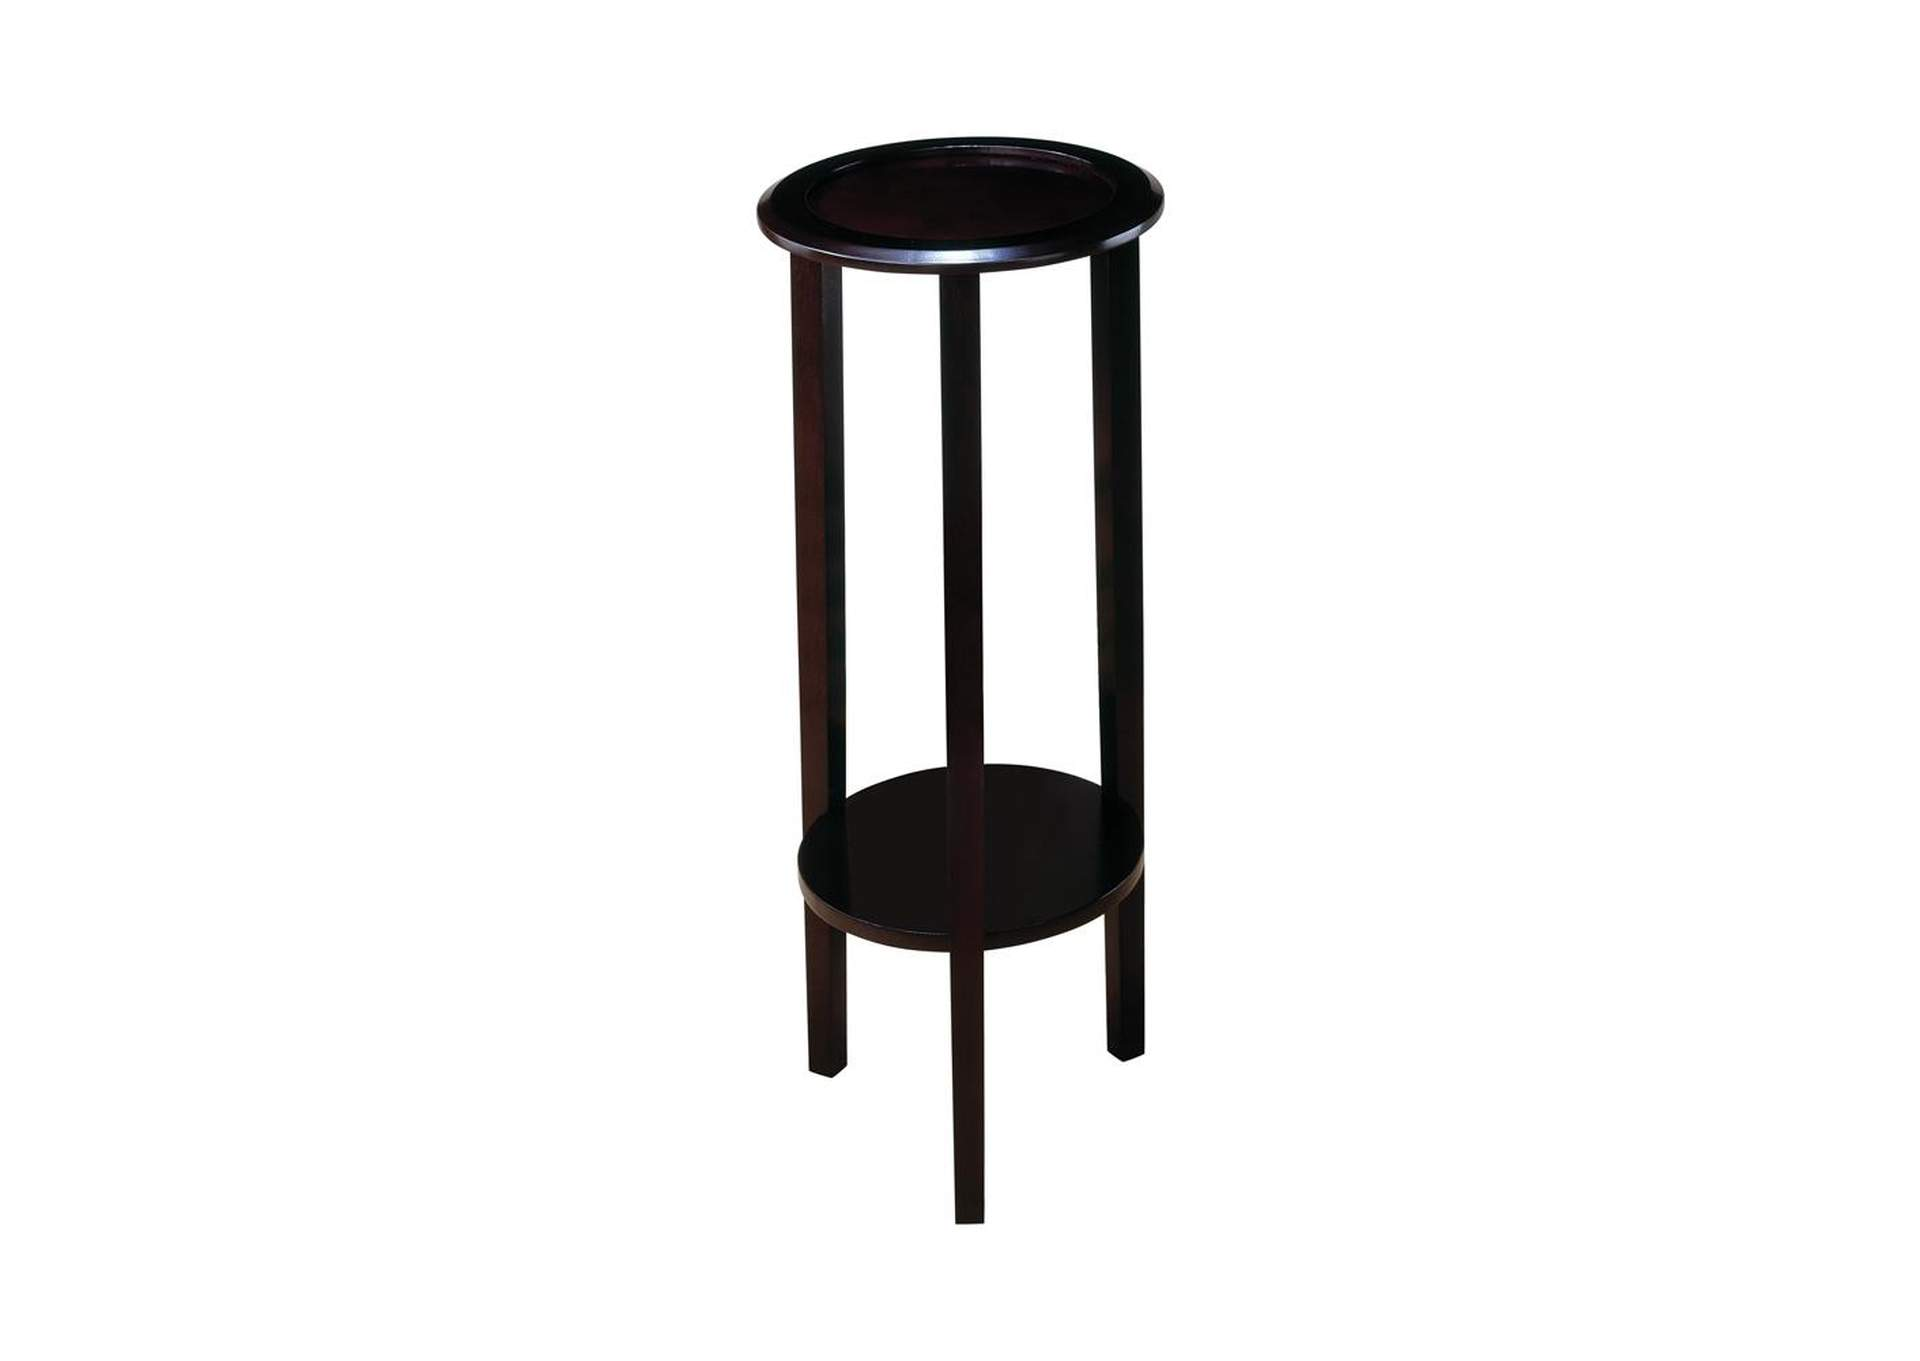 Espresso Transitional Round Espresso Plant Stand,Coaster Furniture